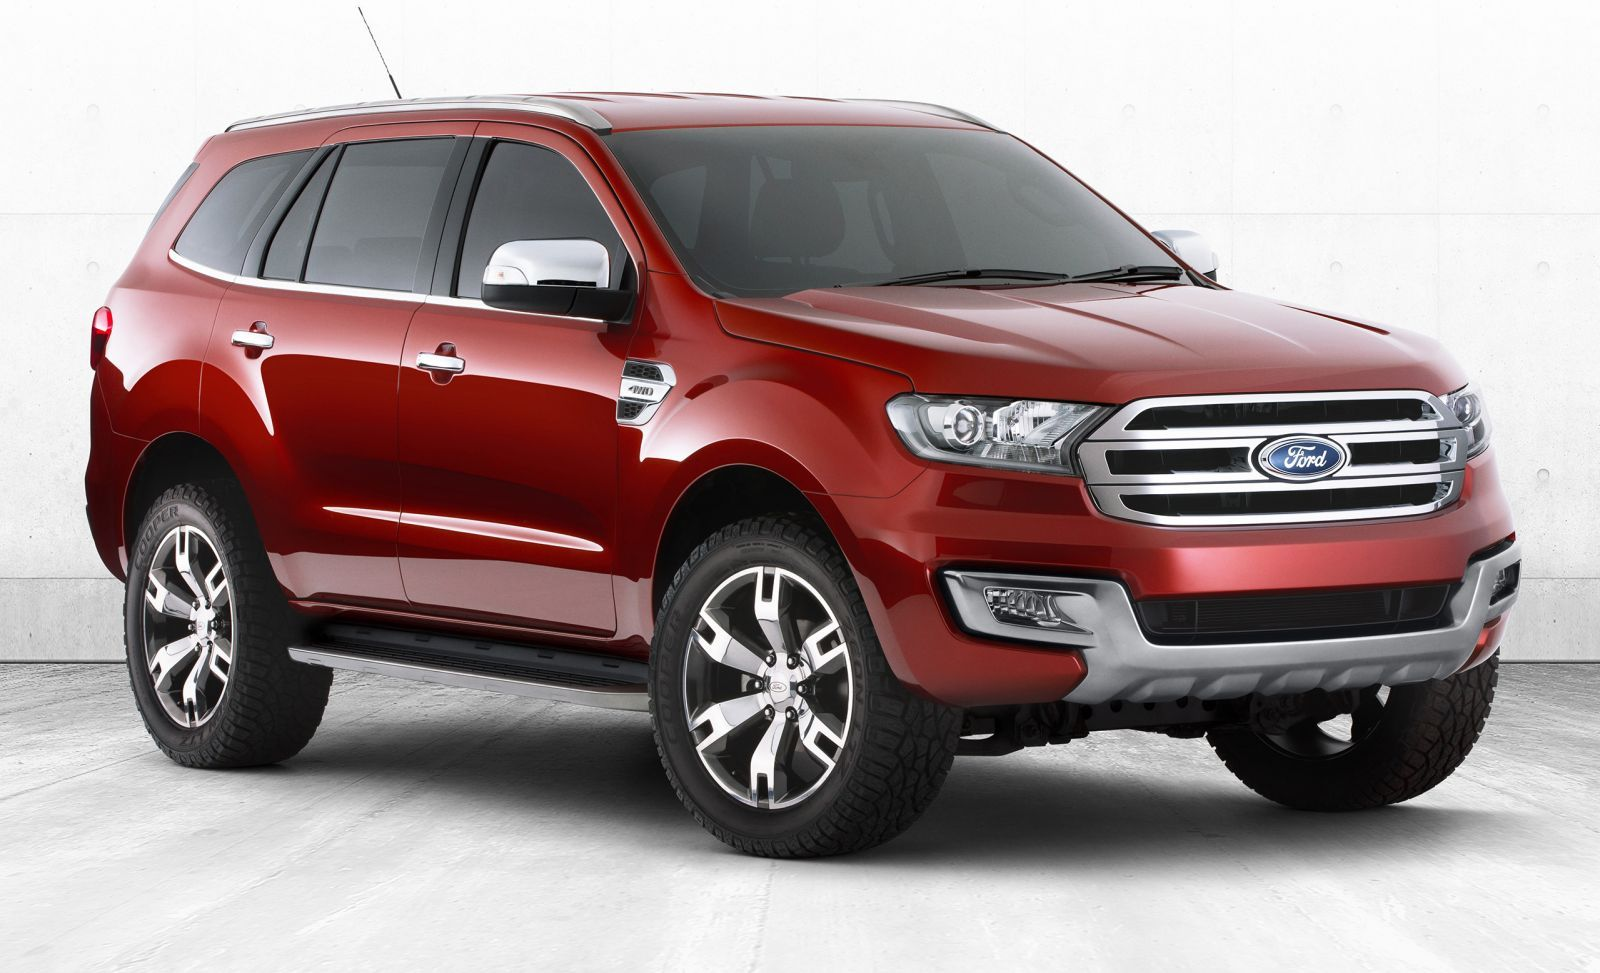 Ford australia has revealed everest concept or endeavour facelift endeavour facelift everest will be launched in ford everest concept will be sport